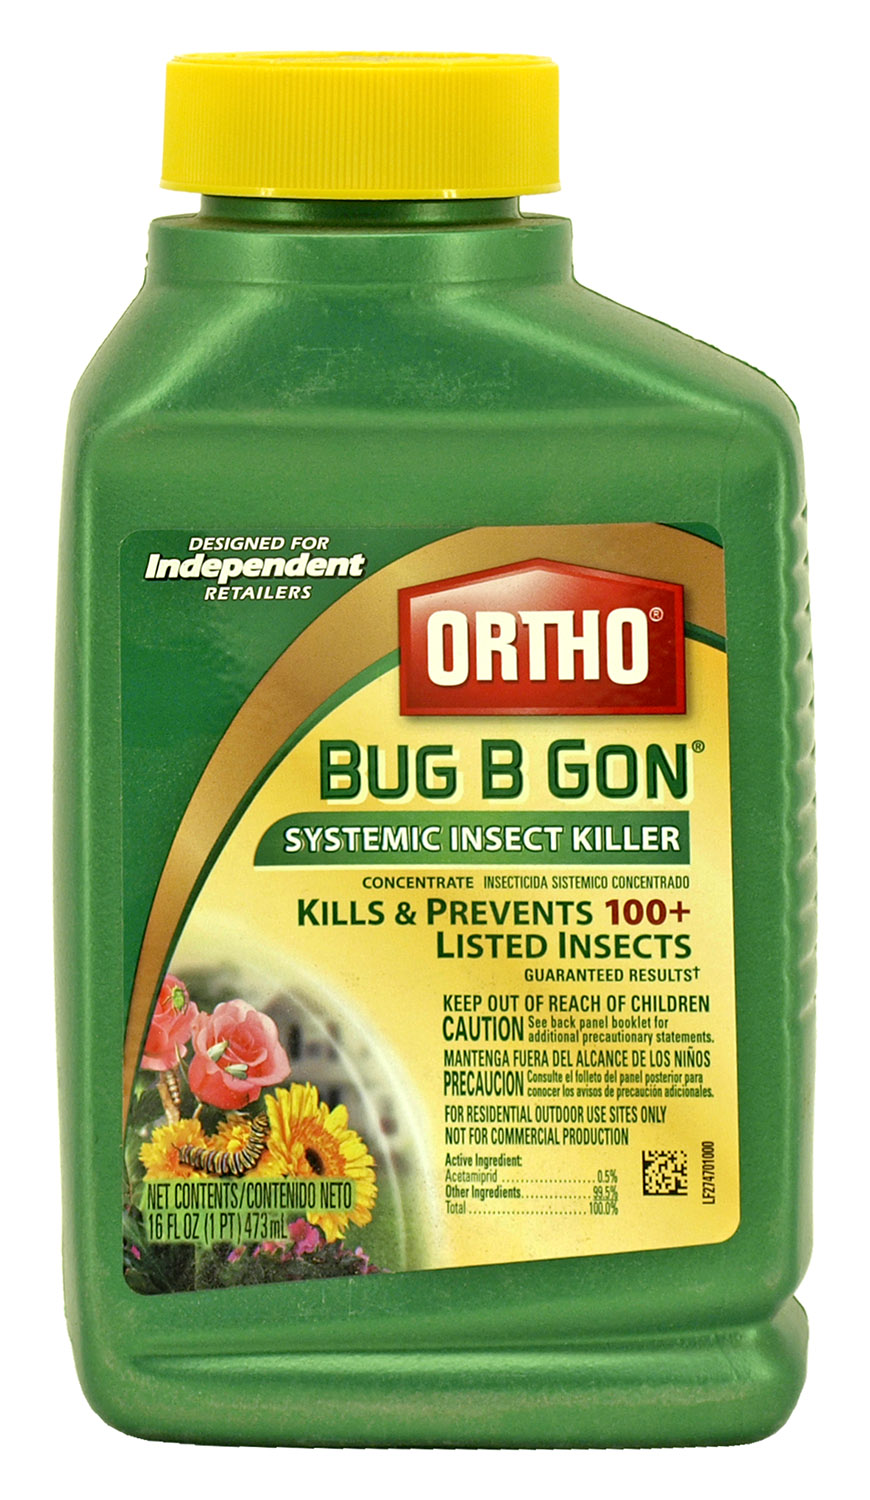 Ortho Bug B Gon Systemic Insect Killer